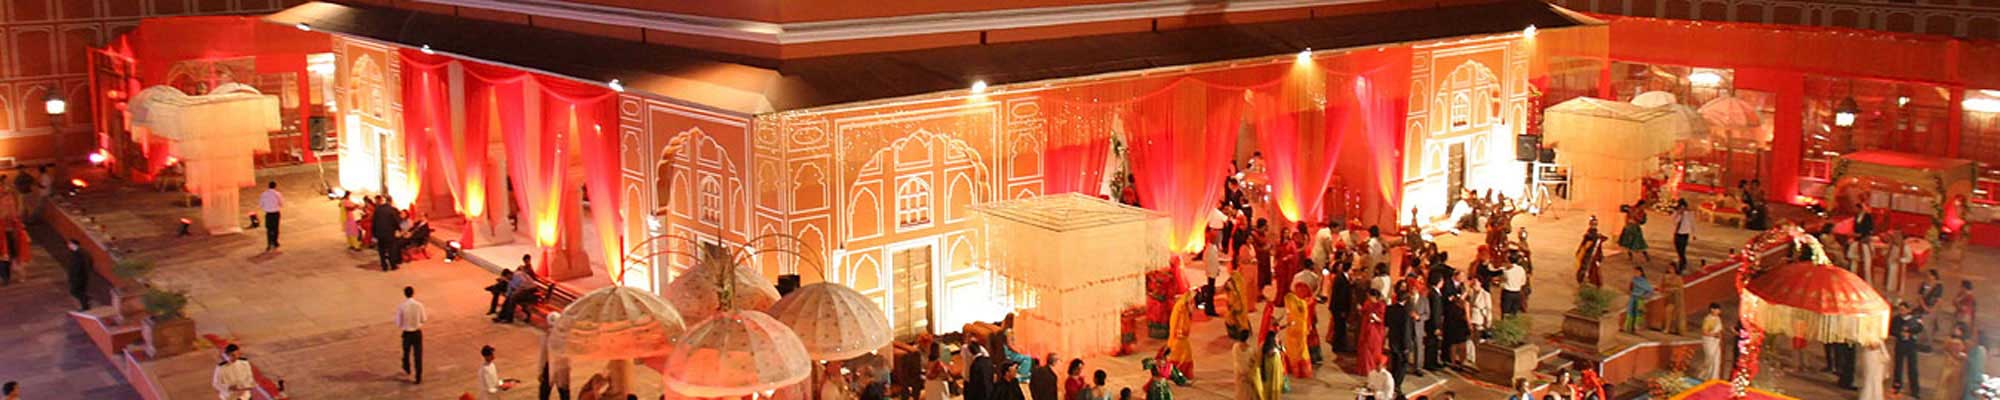 palace-wedding-jaipur.jpg